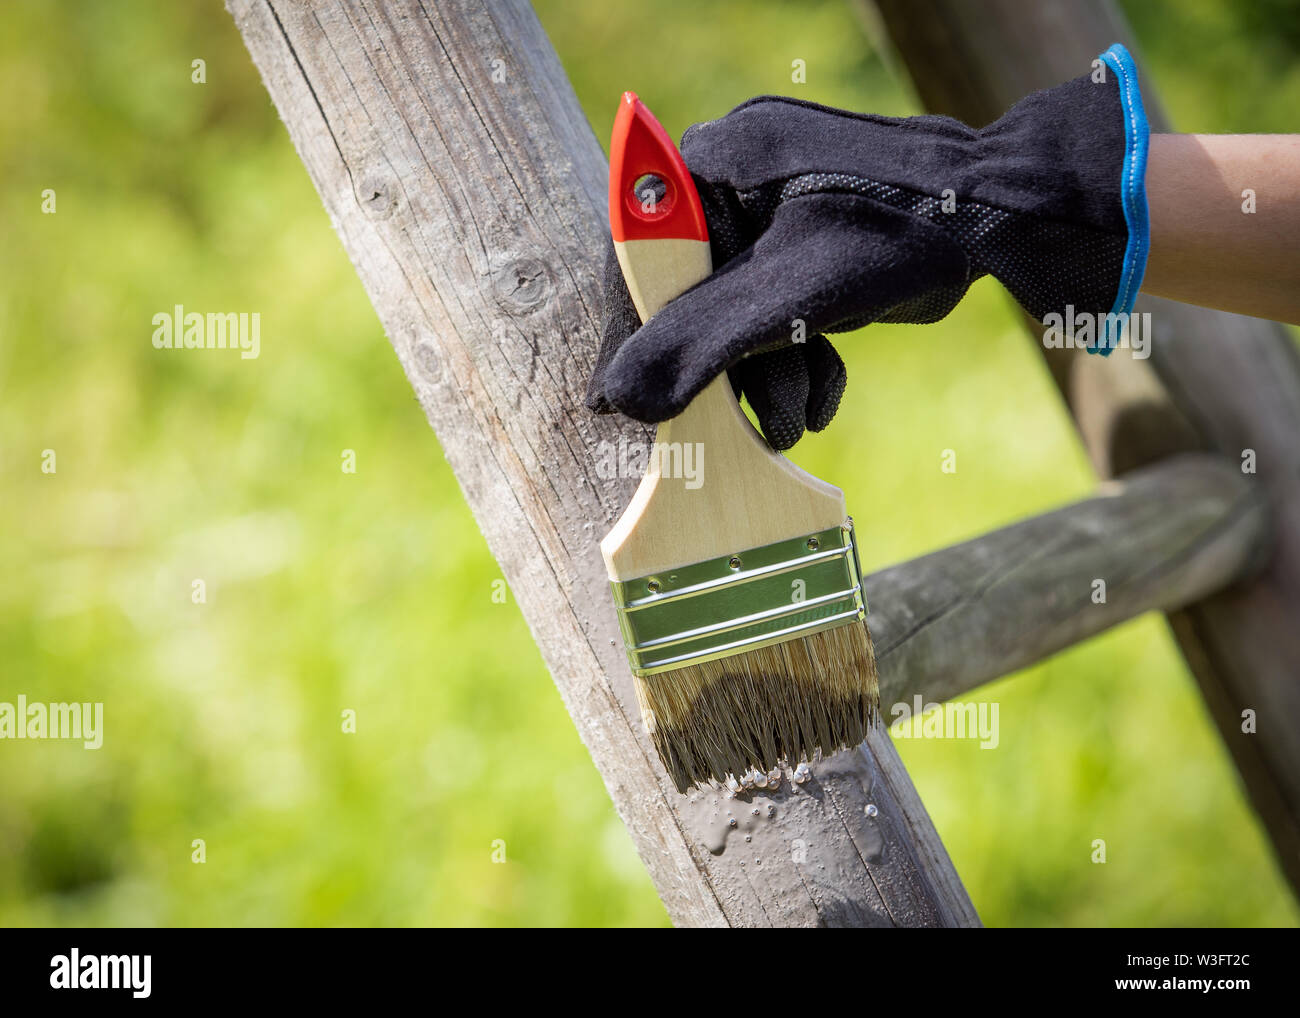 Hand with glove holding brush and painting on the surfaces with fresh protective paint - Stock Image